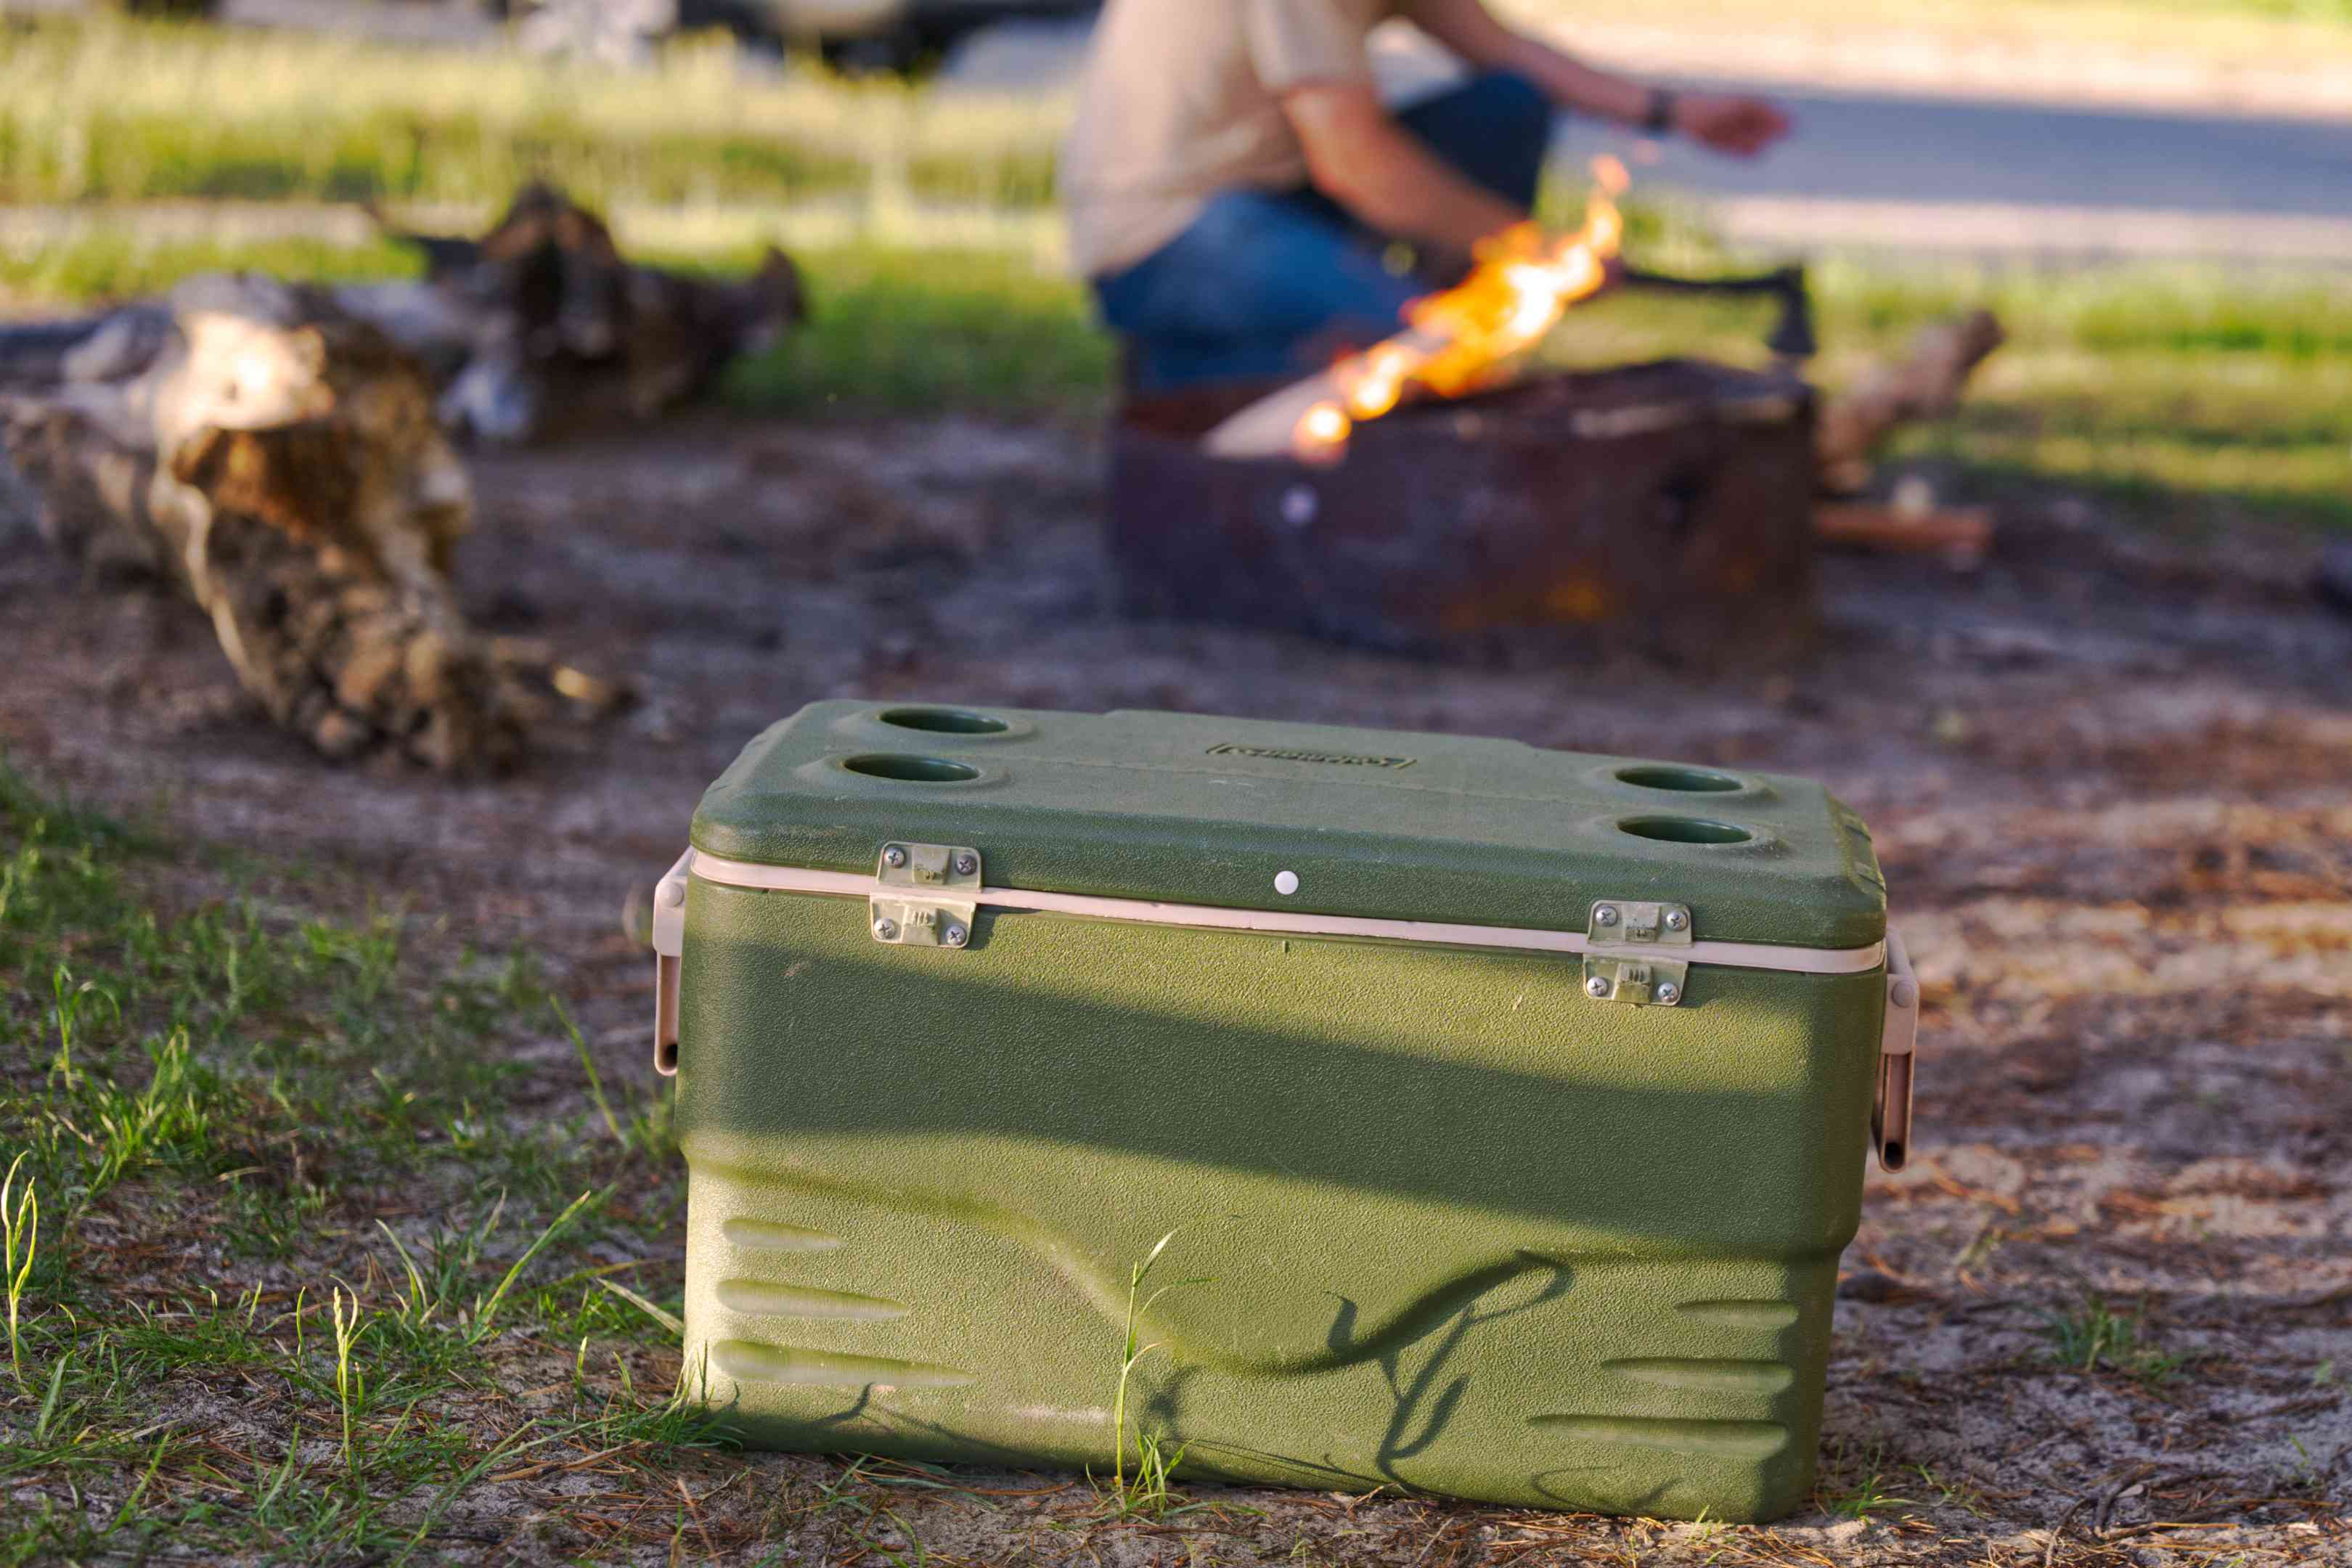 army-green plastic cooler sits in dirt while guy makes fire in campsite firepit